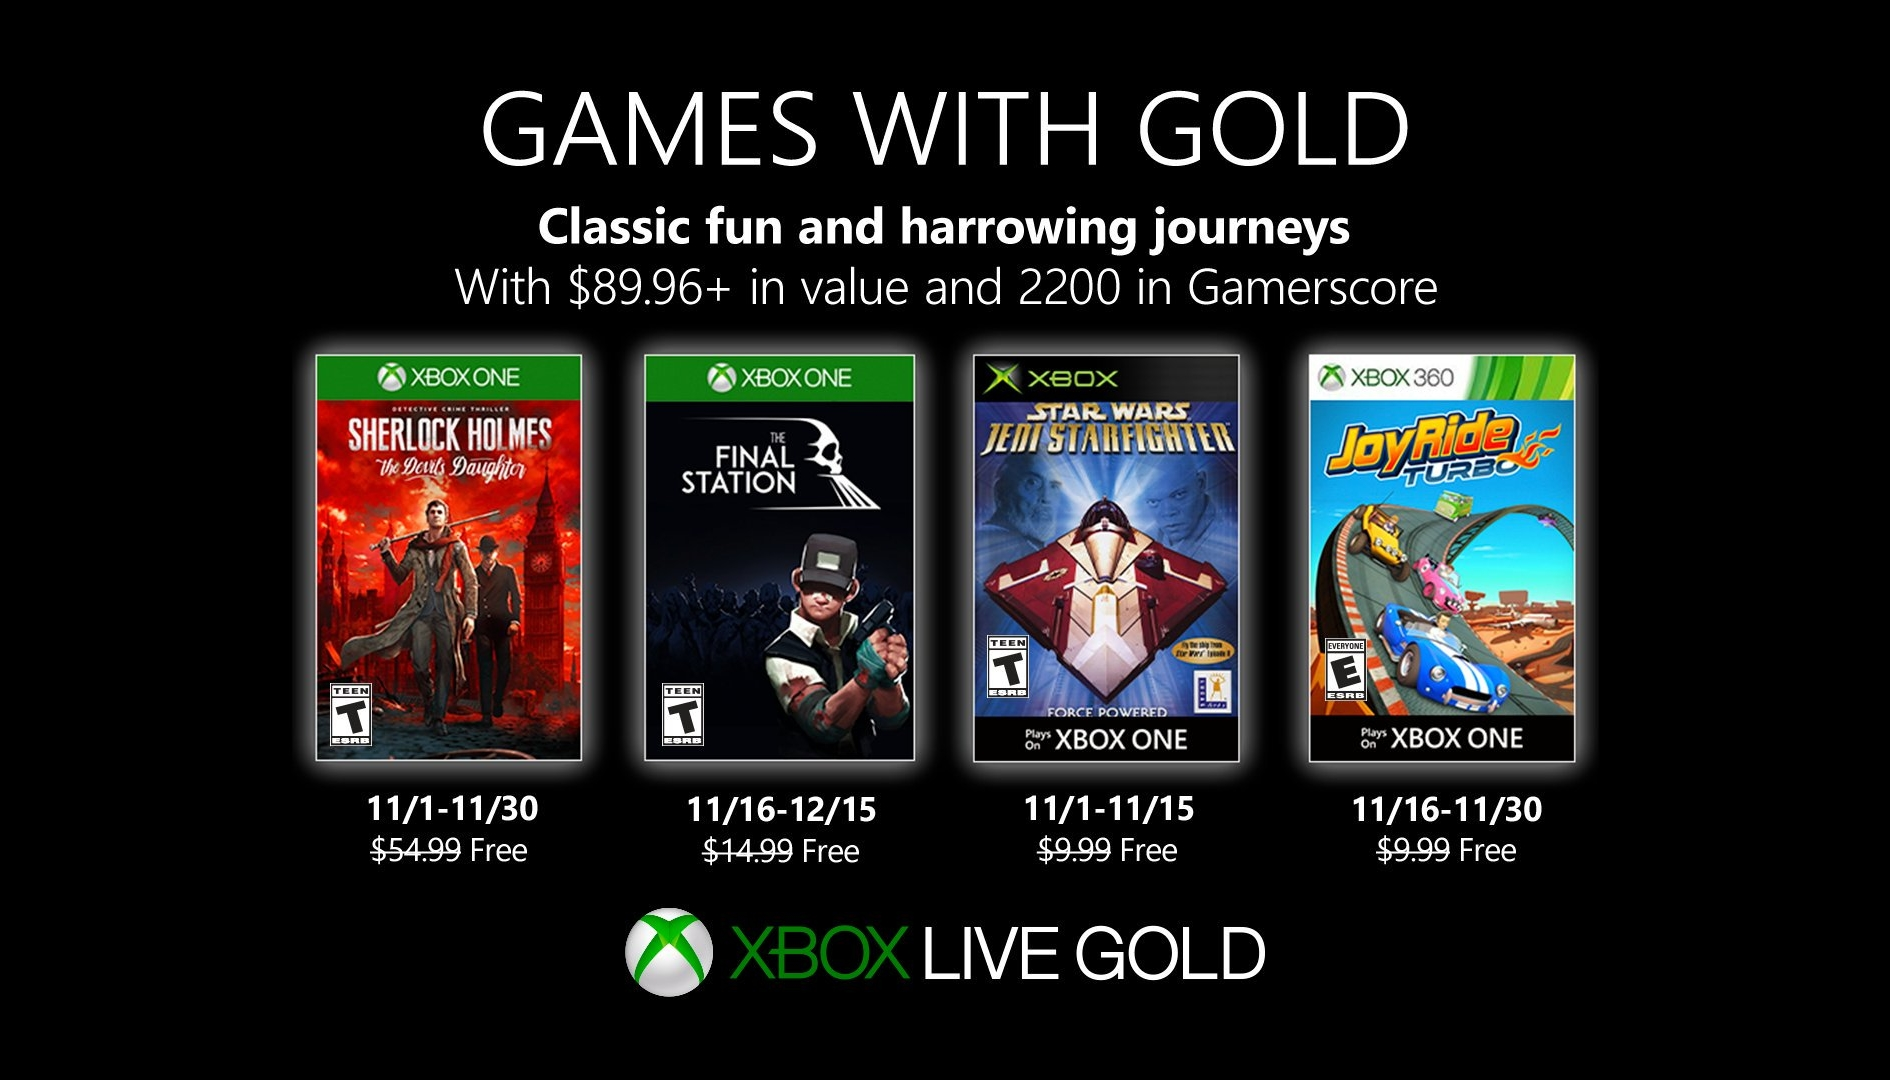 Games with Gold: Sherlock Holmes e The Final Station tra i giochi gratuiti di Novembre 2019